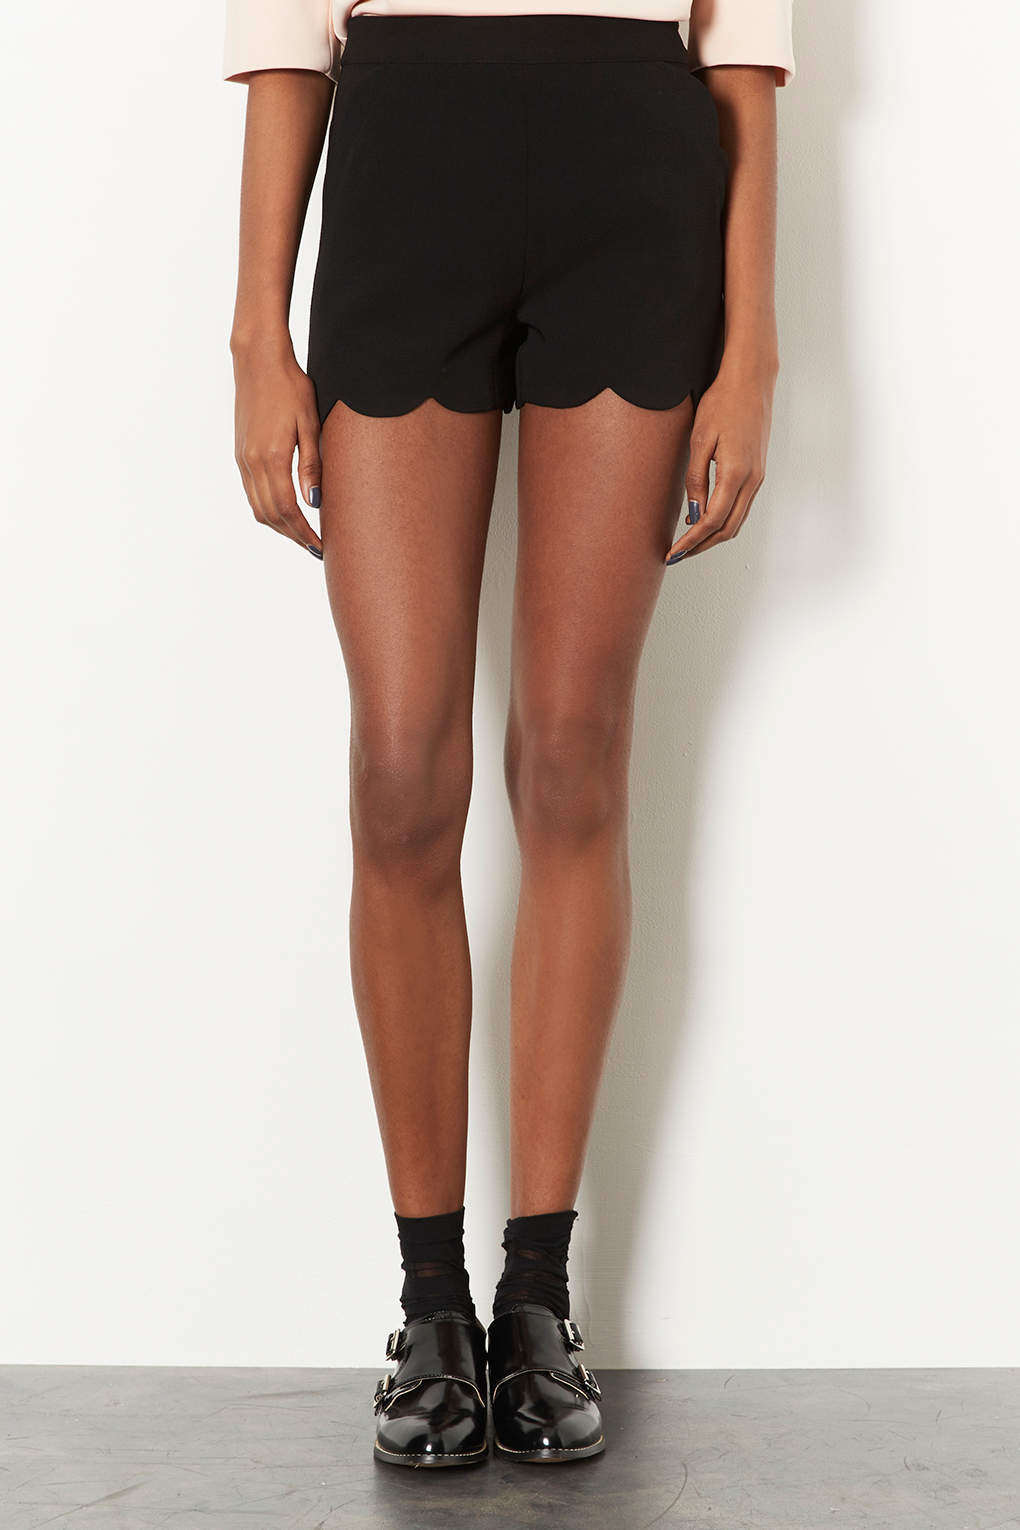 Low Price For Sale Topshop Womens Scallop Shorts - Buy Cheap 100% Guaranteed Cheap Order Cheap Online Shop IYxfA5